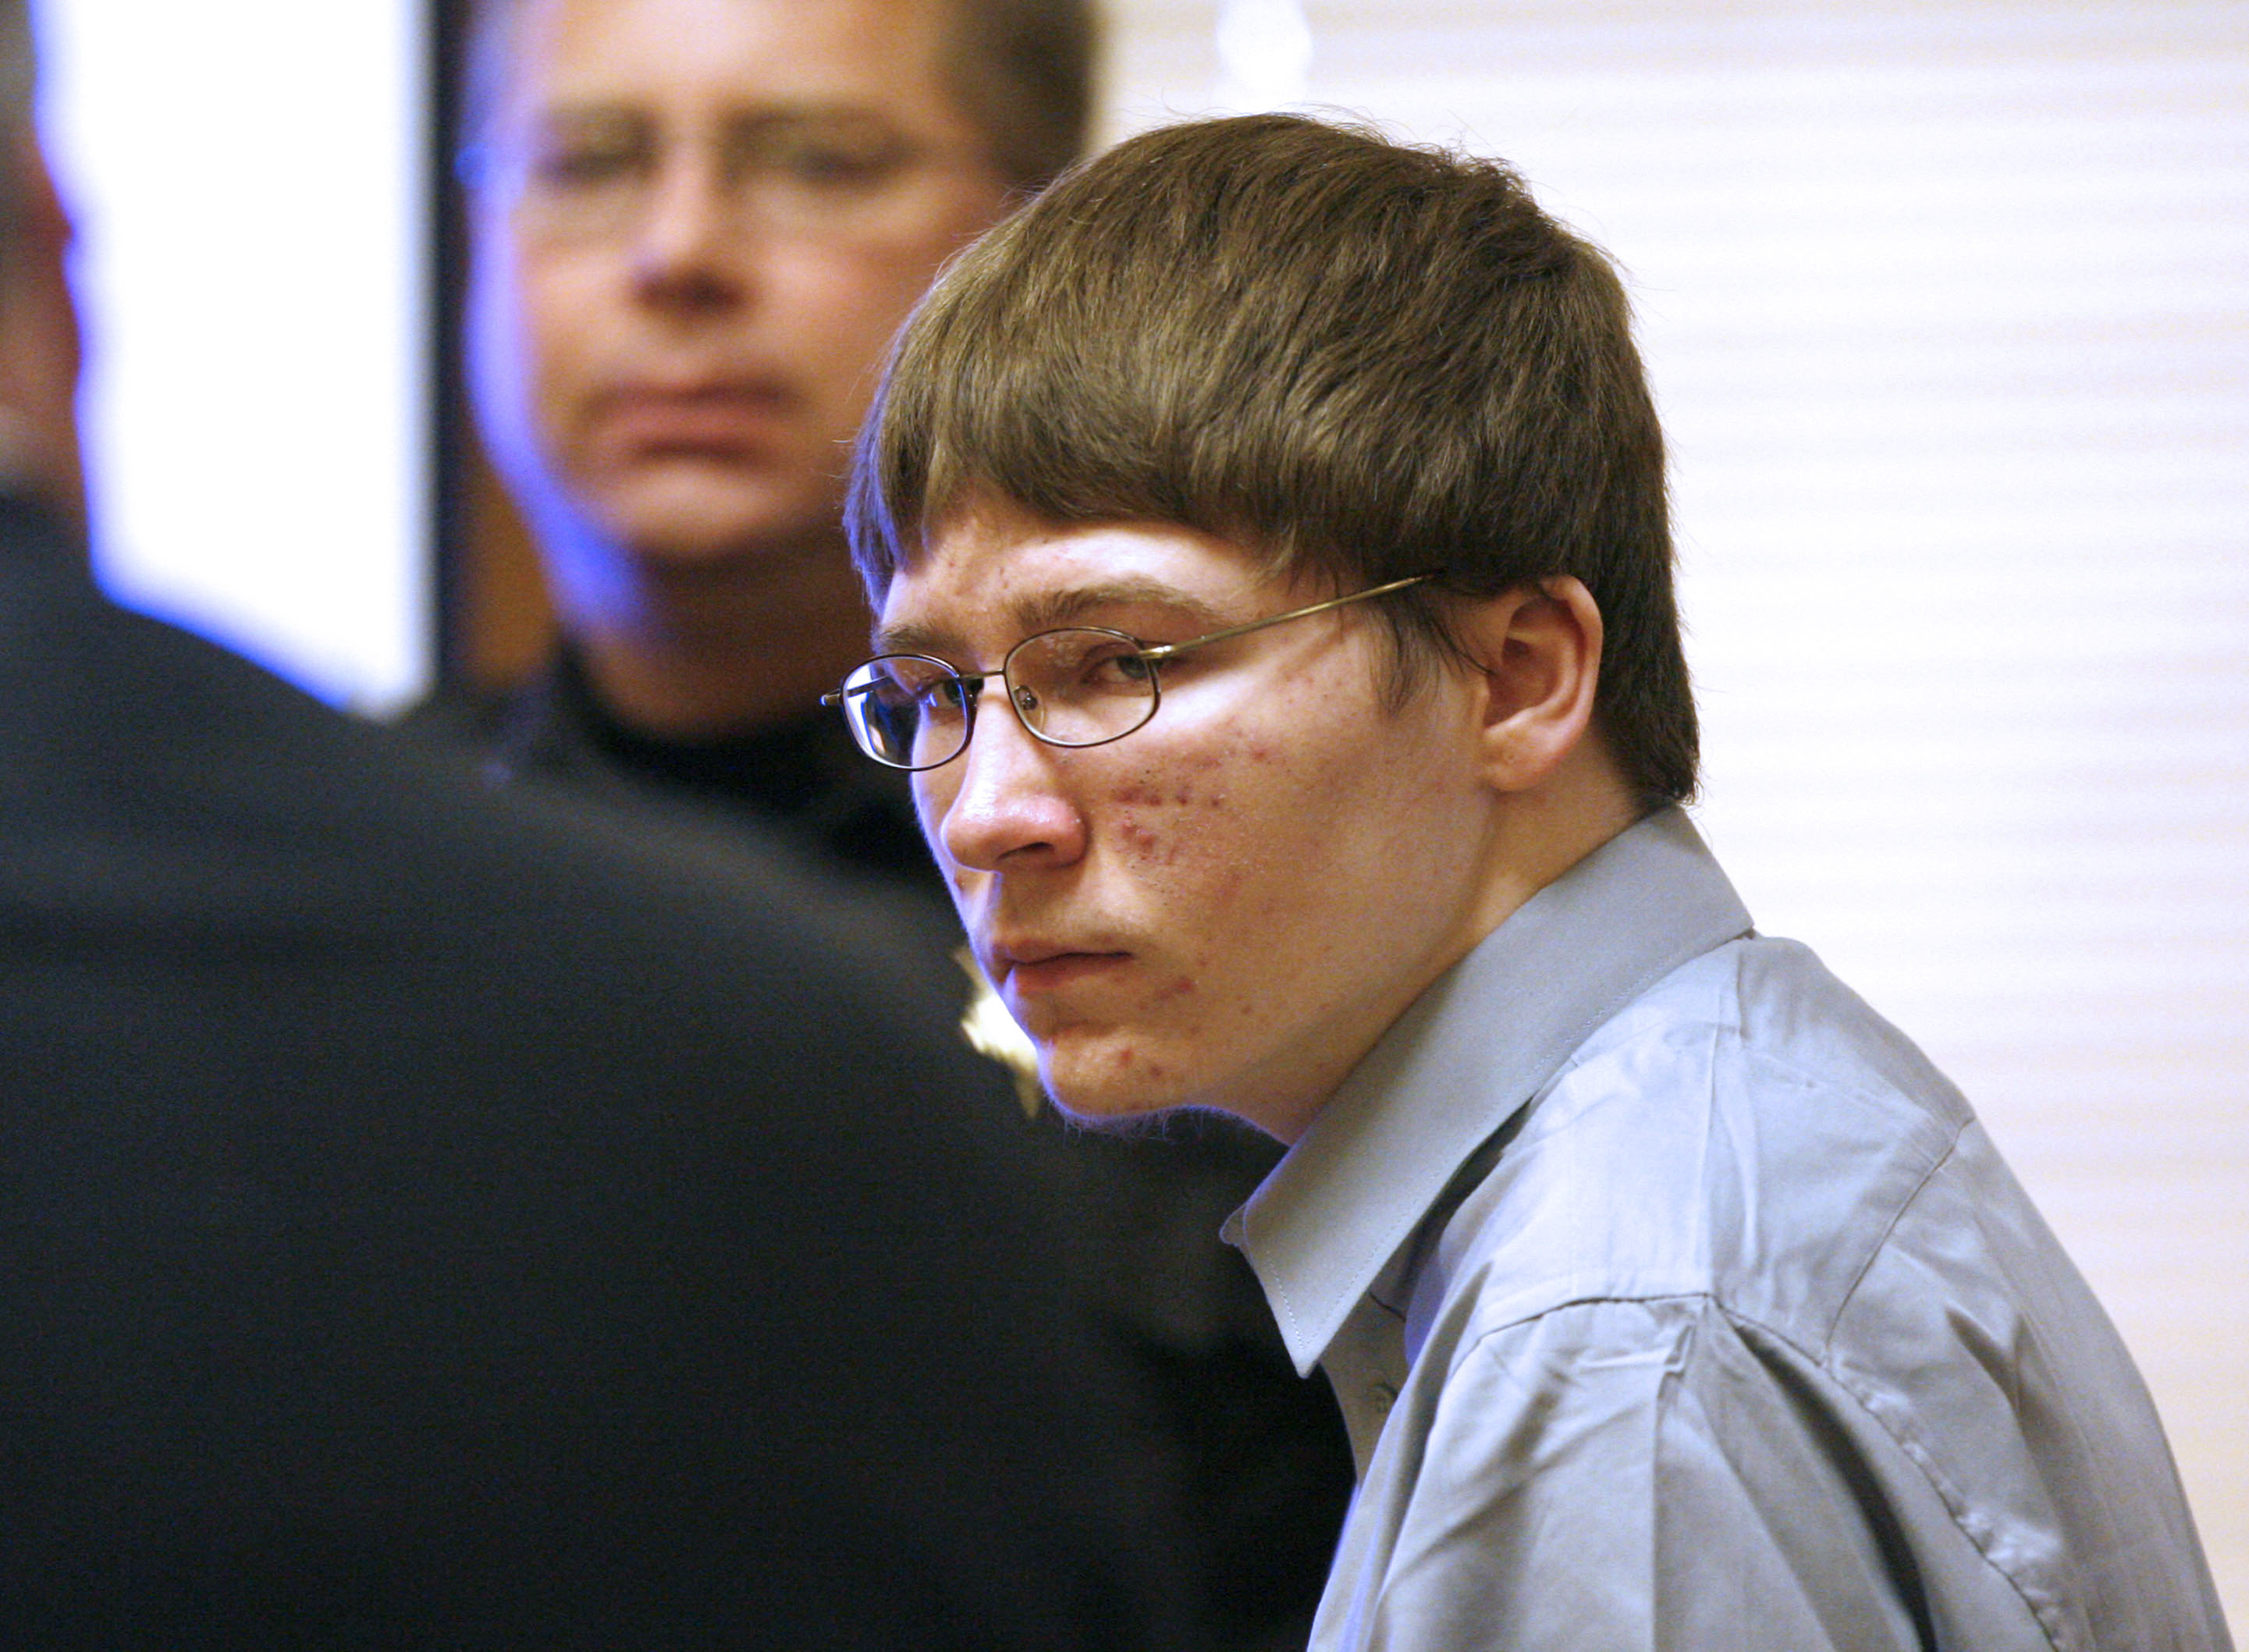 Brendan Dassey appears in court April 16, 2007, at the Manitowoc County Courthouse in Manitowoc, Wis.